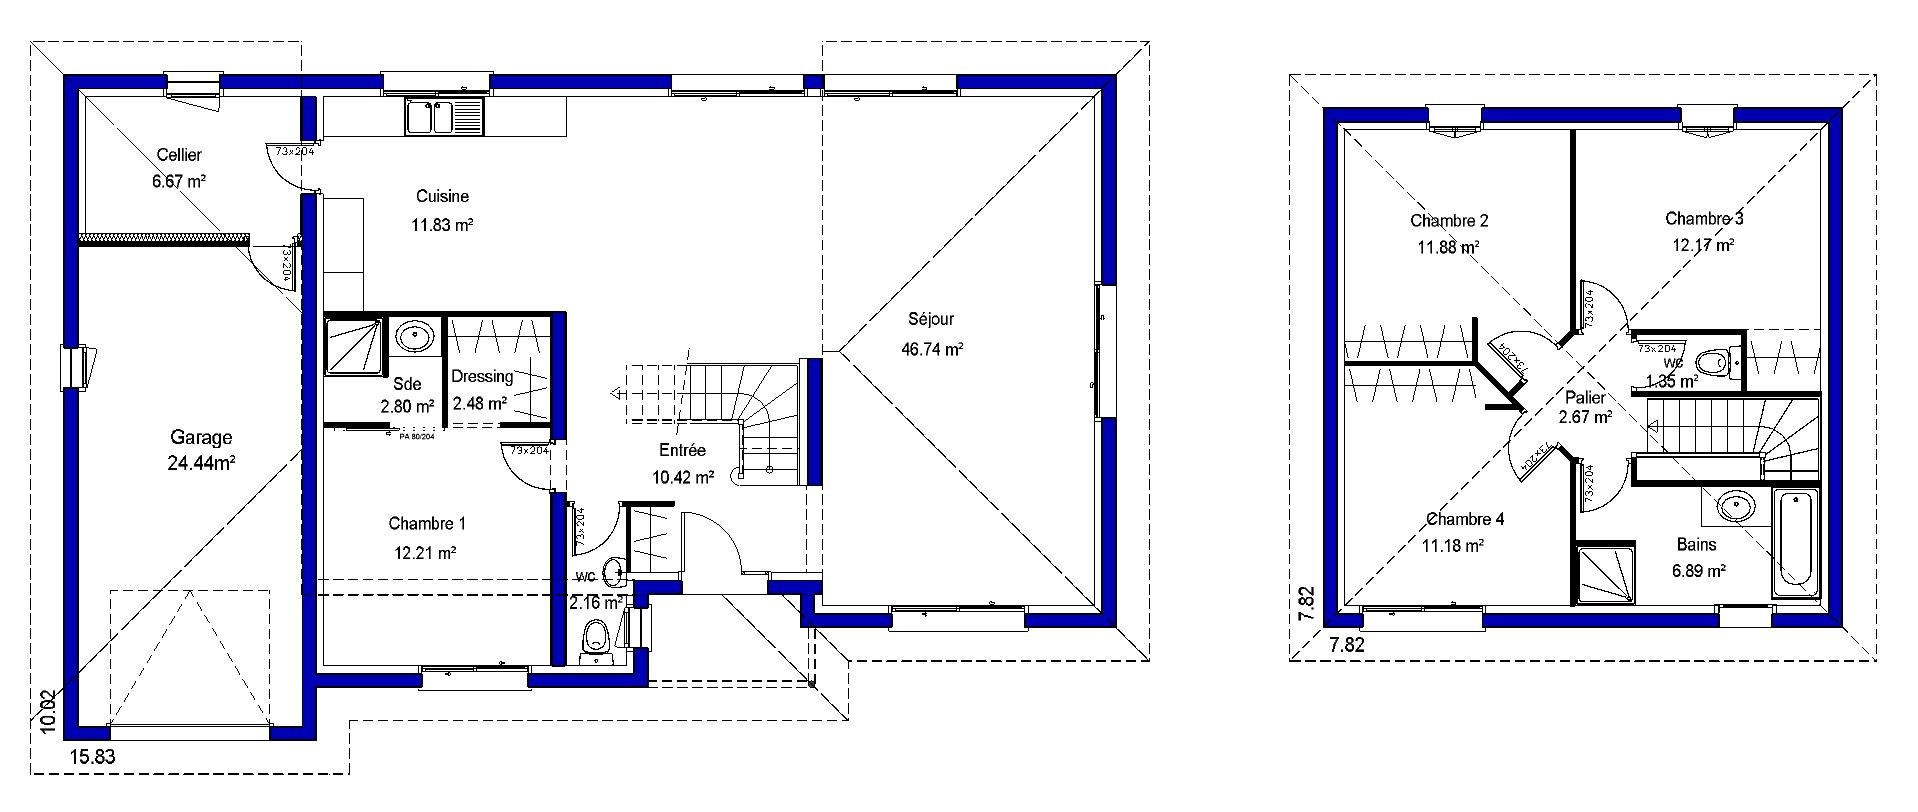 Plan de maison r 1 moderne for Maison plan moderne